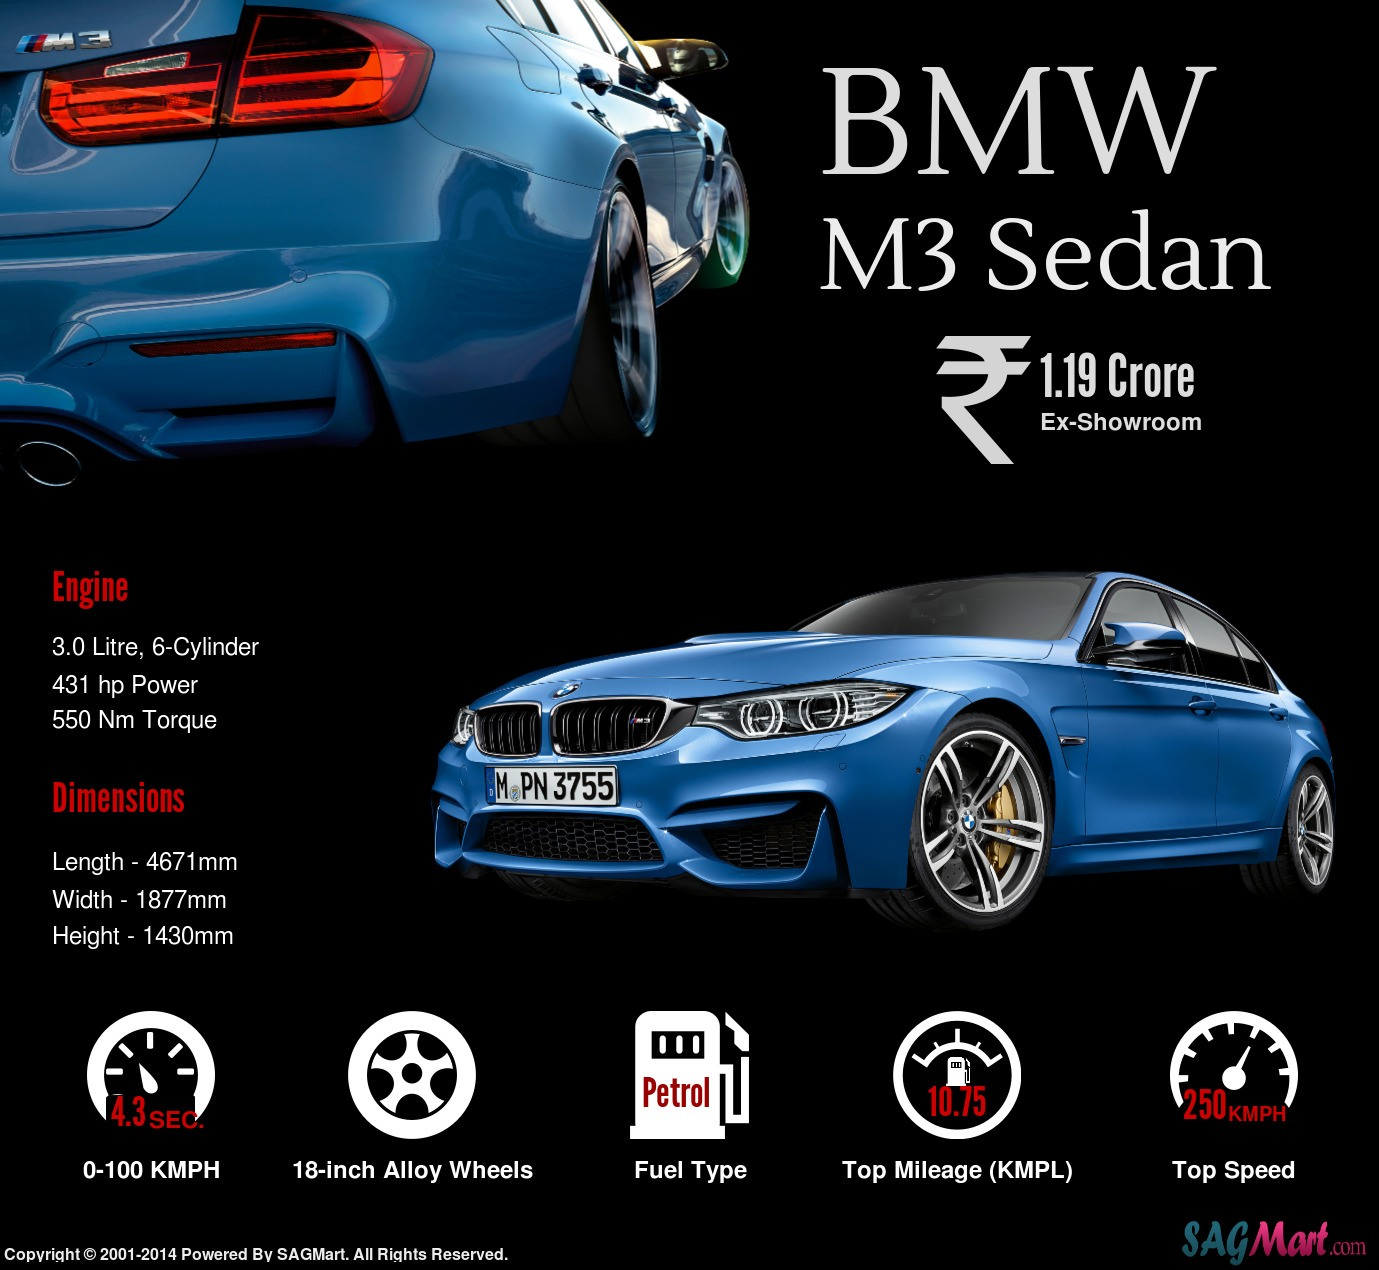 BMW M Sedan Specifications And Price Infographic SAGMart - 2015 bmw m3 sedan price